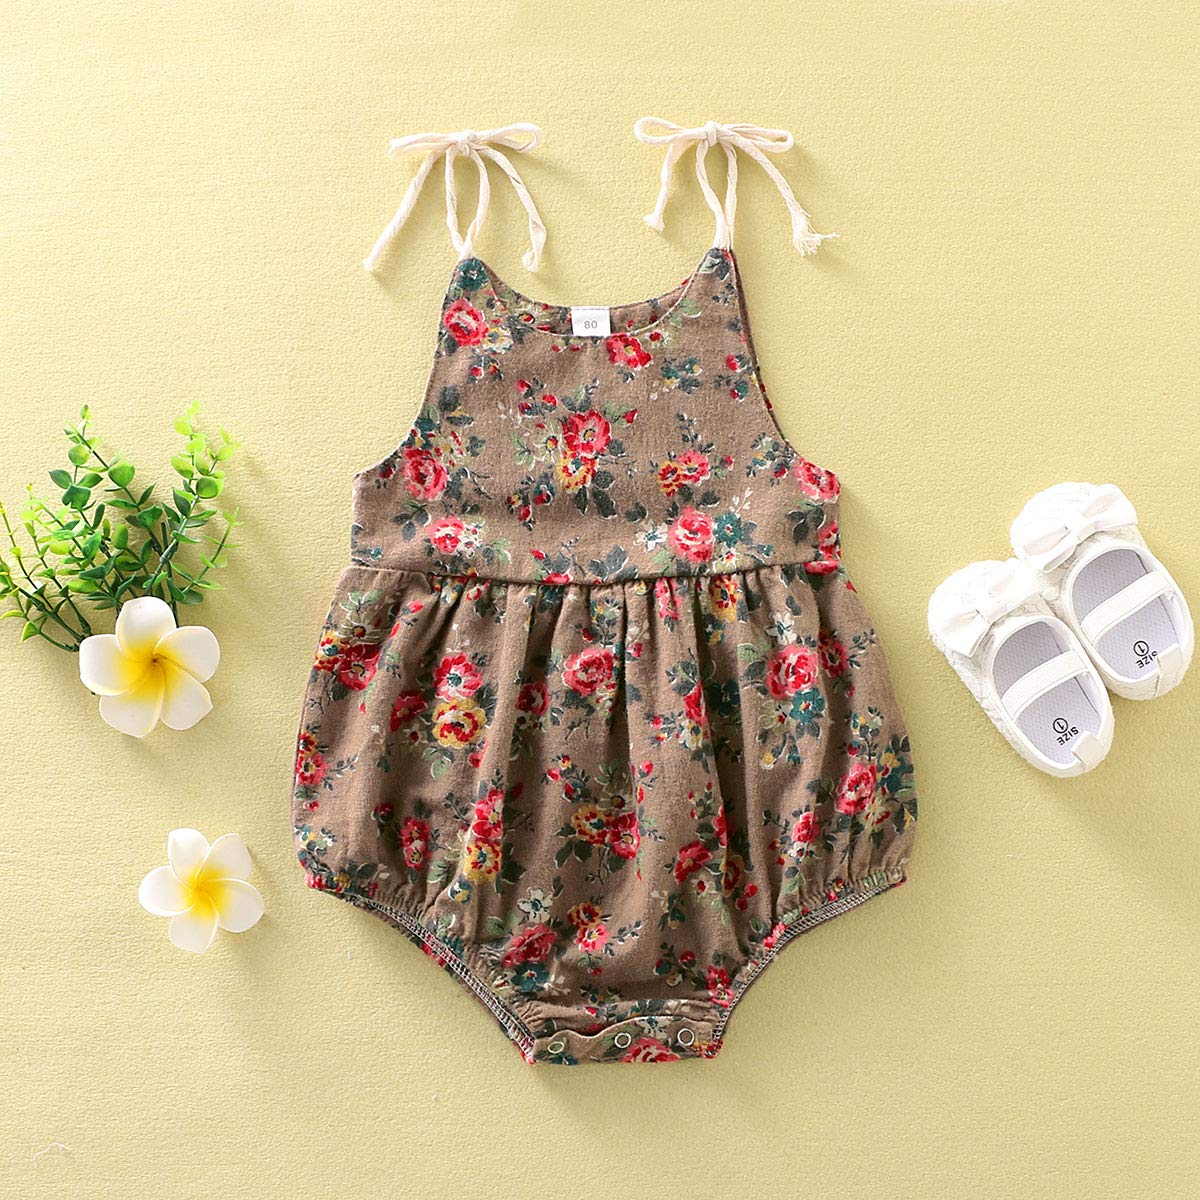 Happy Town 3-24M Floral Print Romper for Baby Girls Summer Strap Bodysuit Sunsuit Outfits